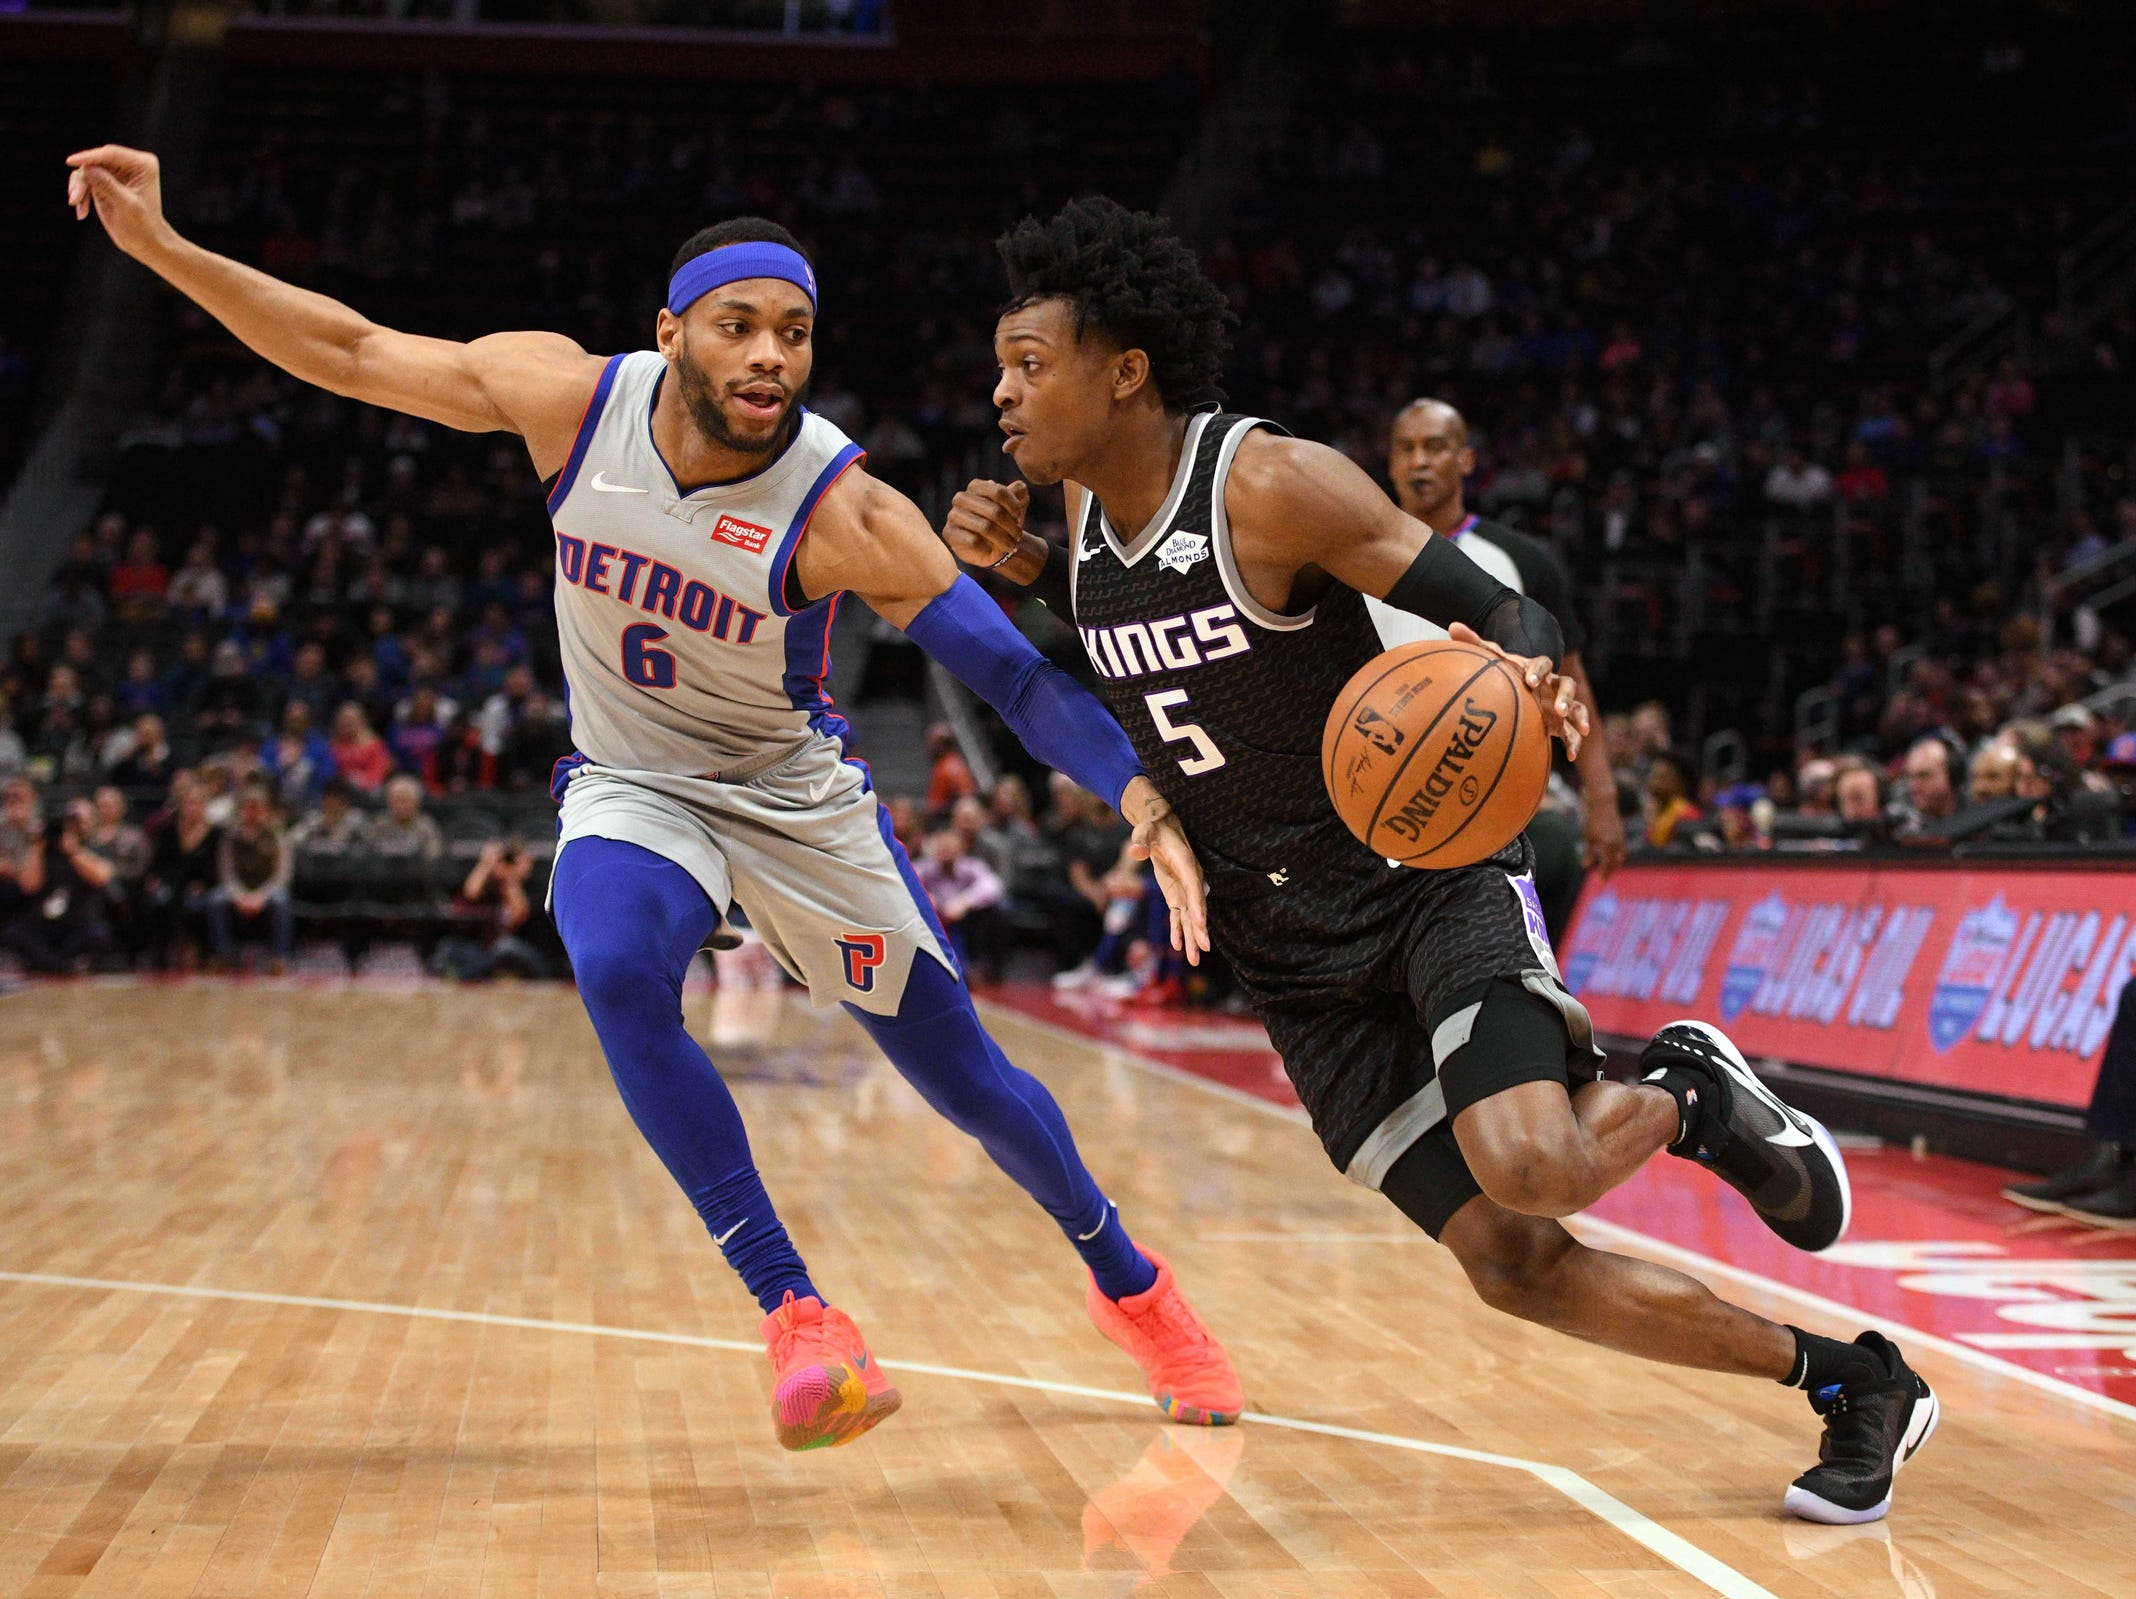 Sacramento Kings guard De'Aaron Fox (5) drives to the basket as Detroit Pistons guard Bruce Brown (6) defends during the first quarter at Little Caesars Arena.